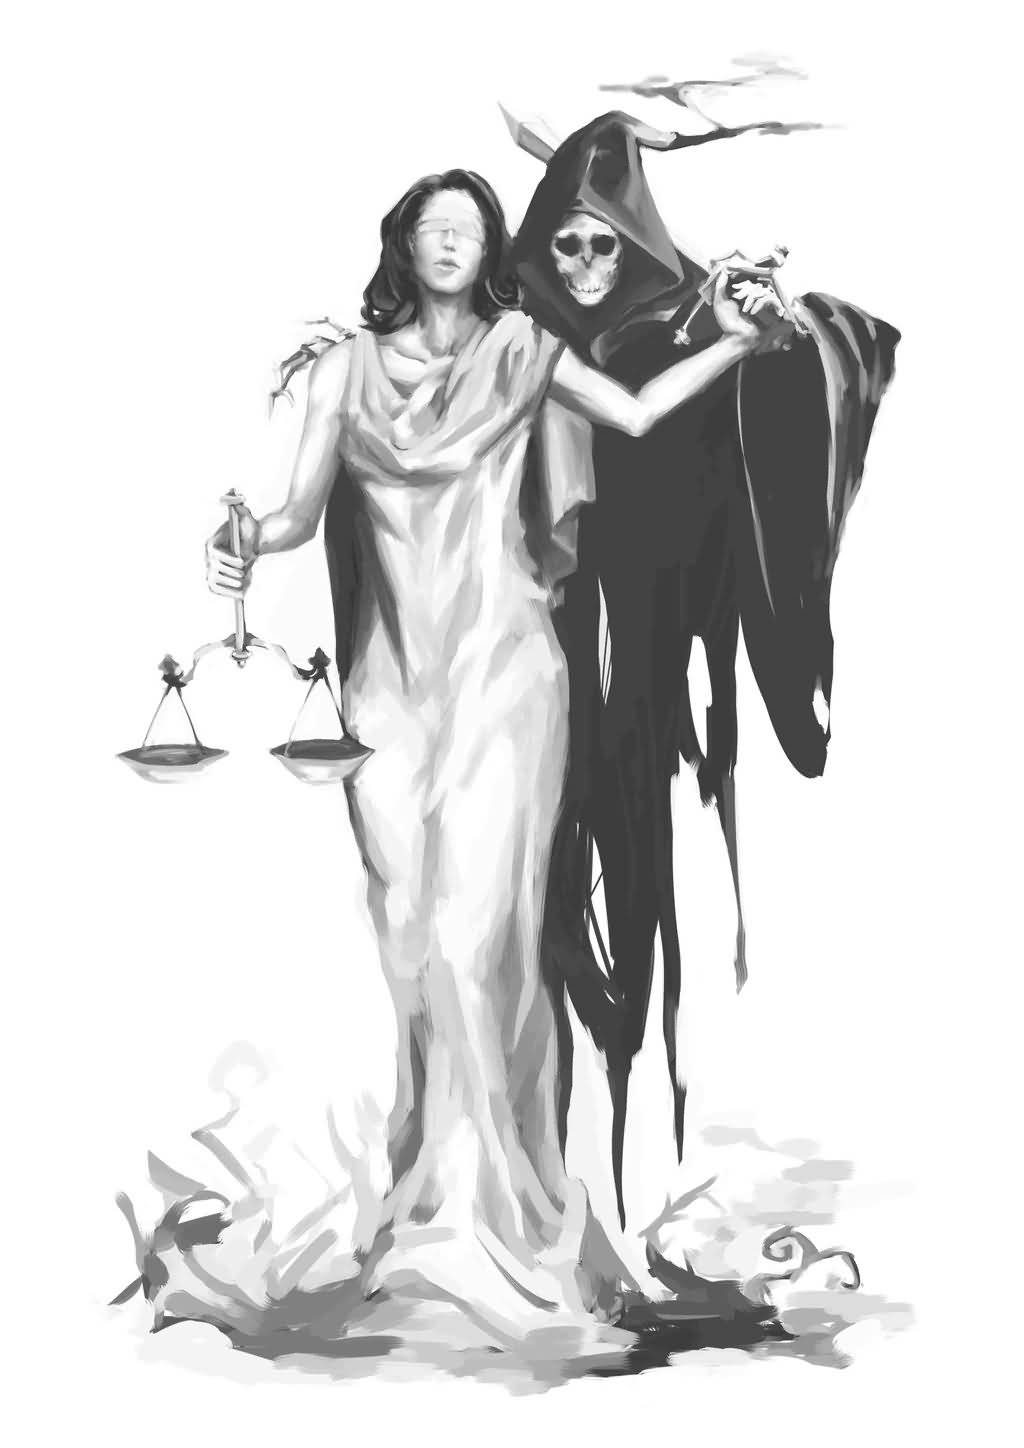 Drawn grim reaper blind Tattoo Tattoo Justice Justice With